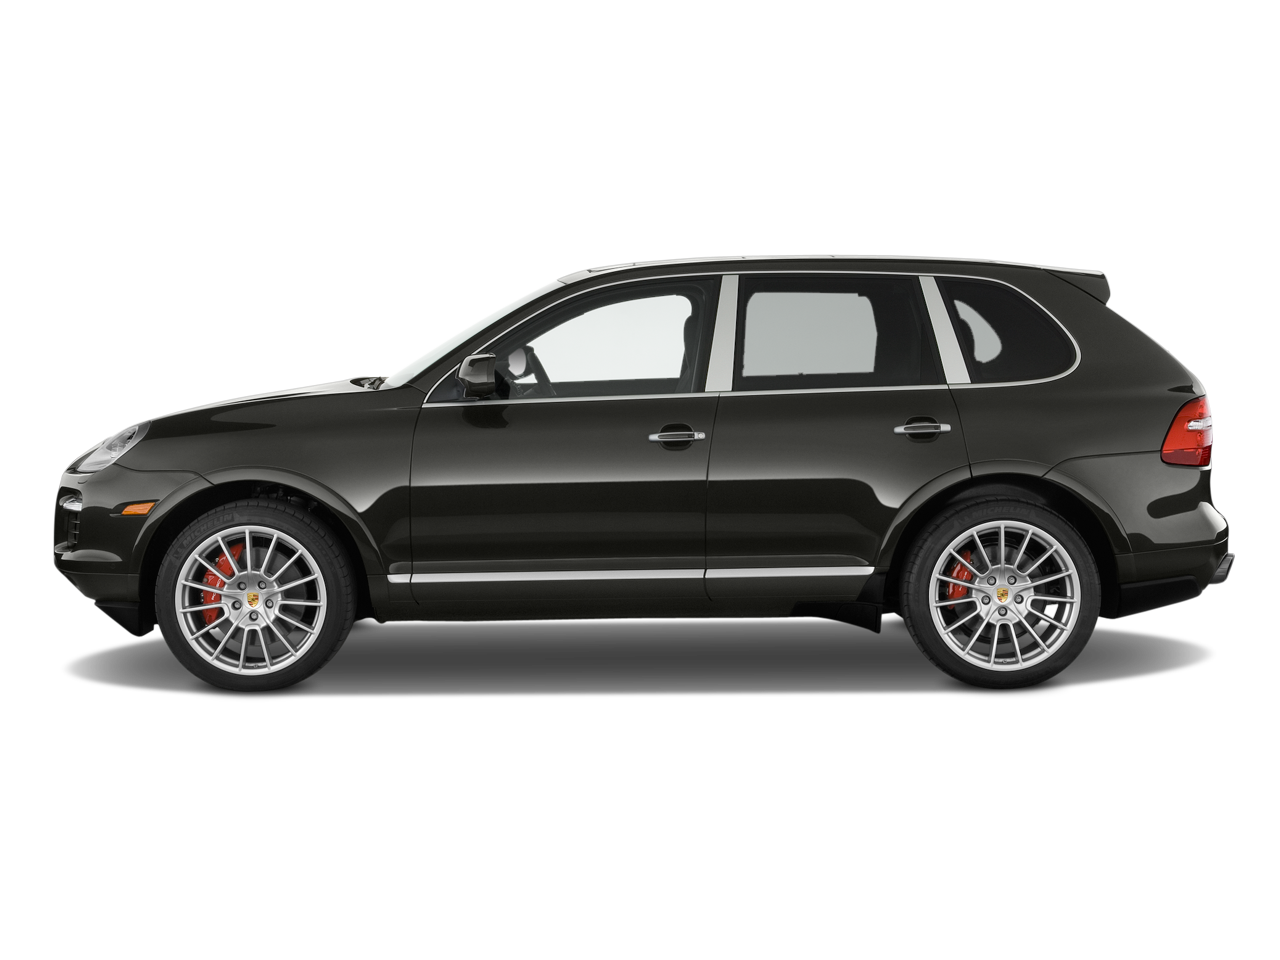 2009 porsche cayenne turbo s porsche luxury crossover suv review automobile magazine. Black Bedroom Furniture Sets. Home Design Ideas